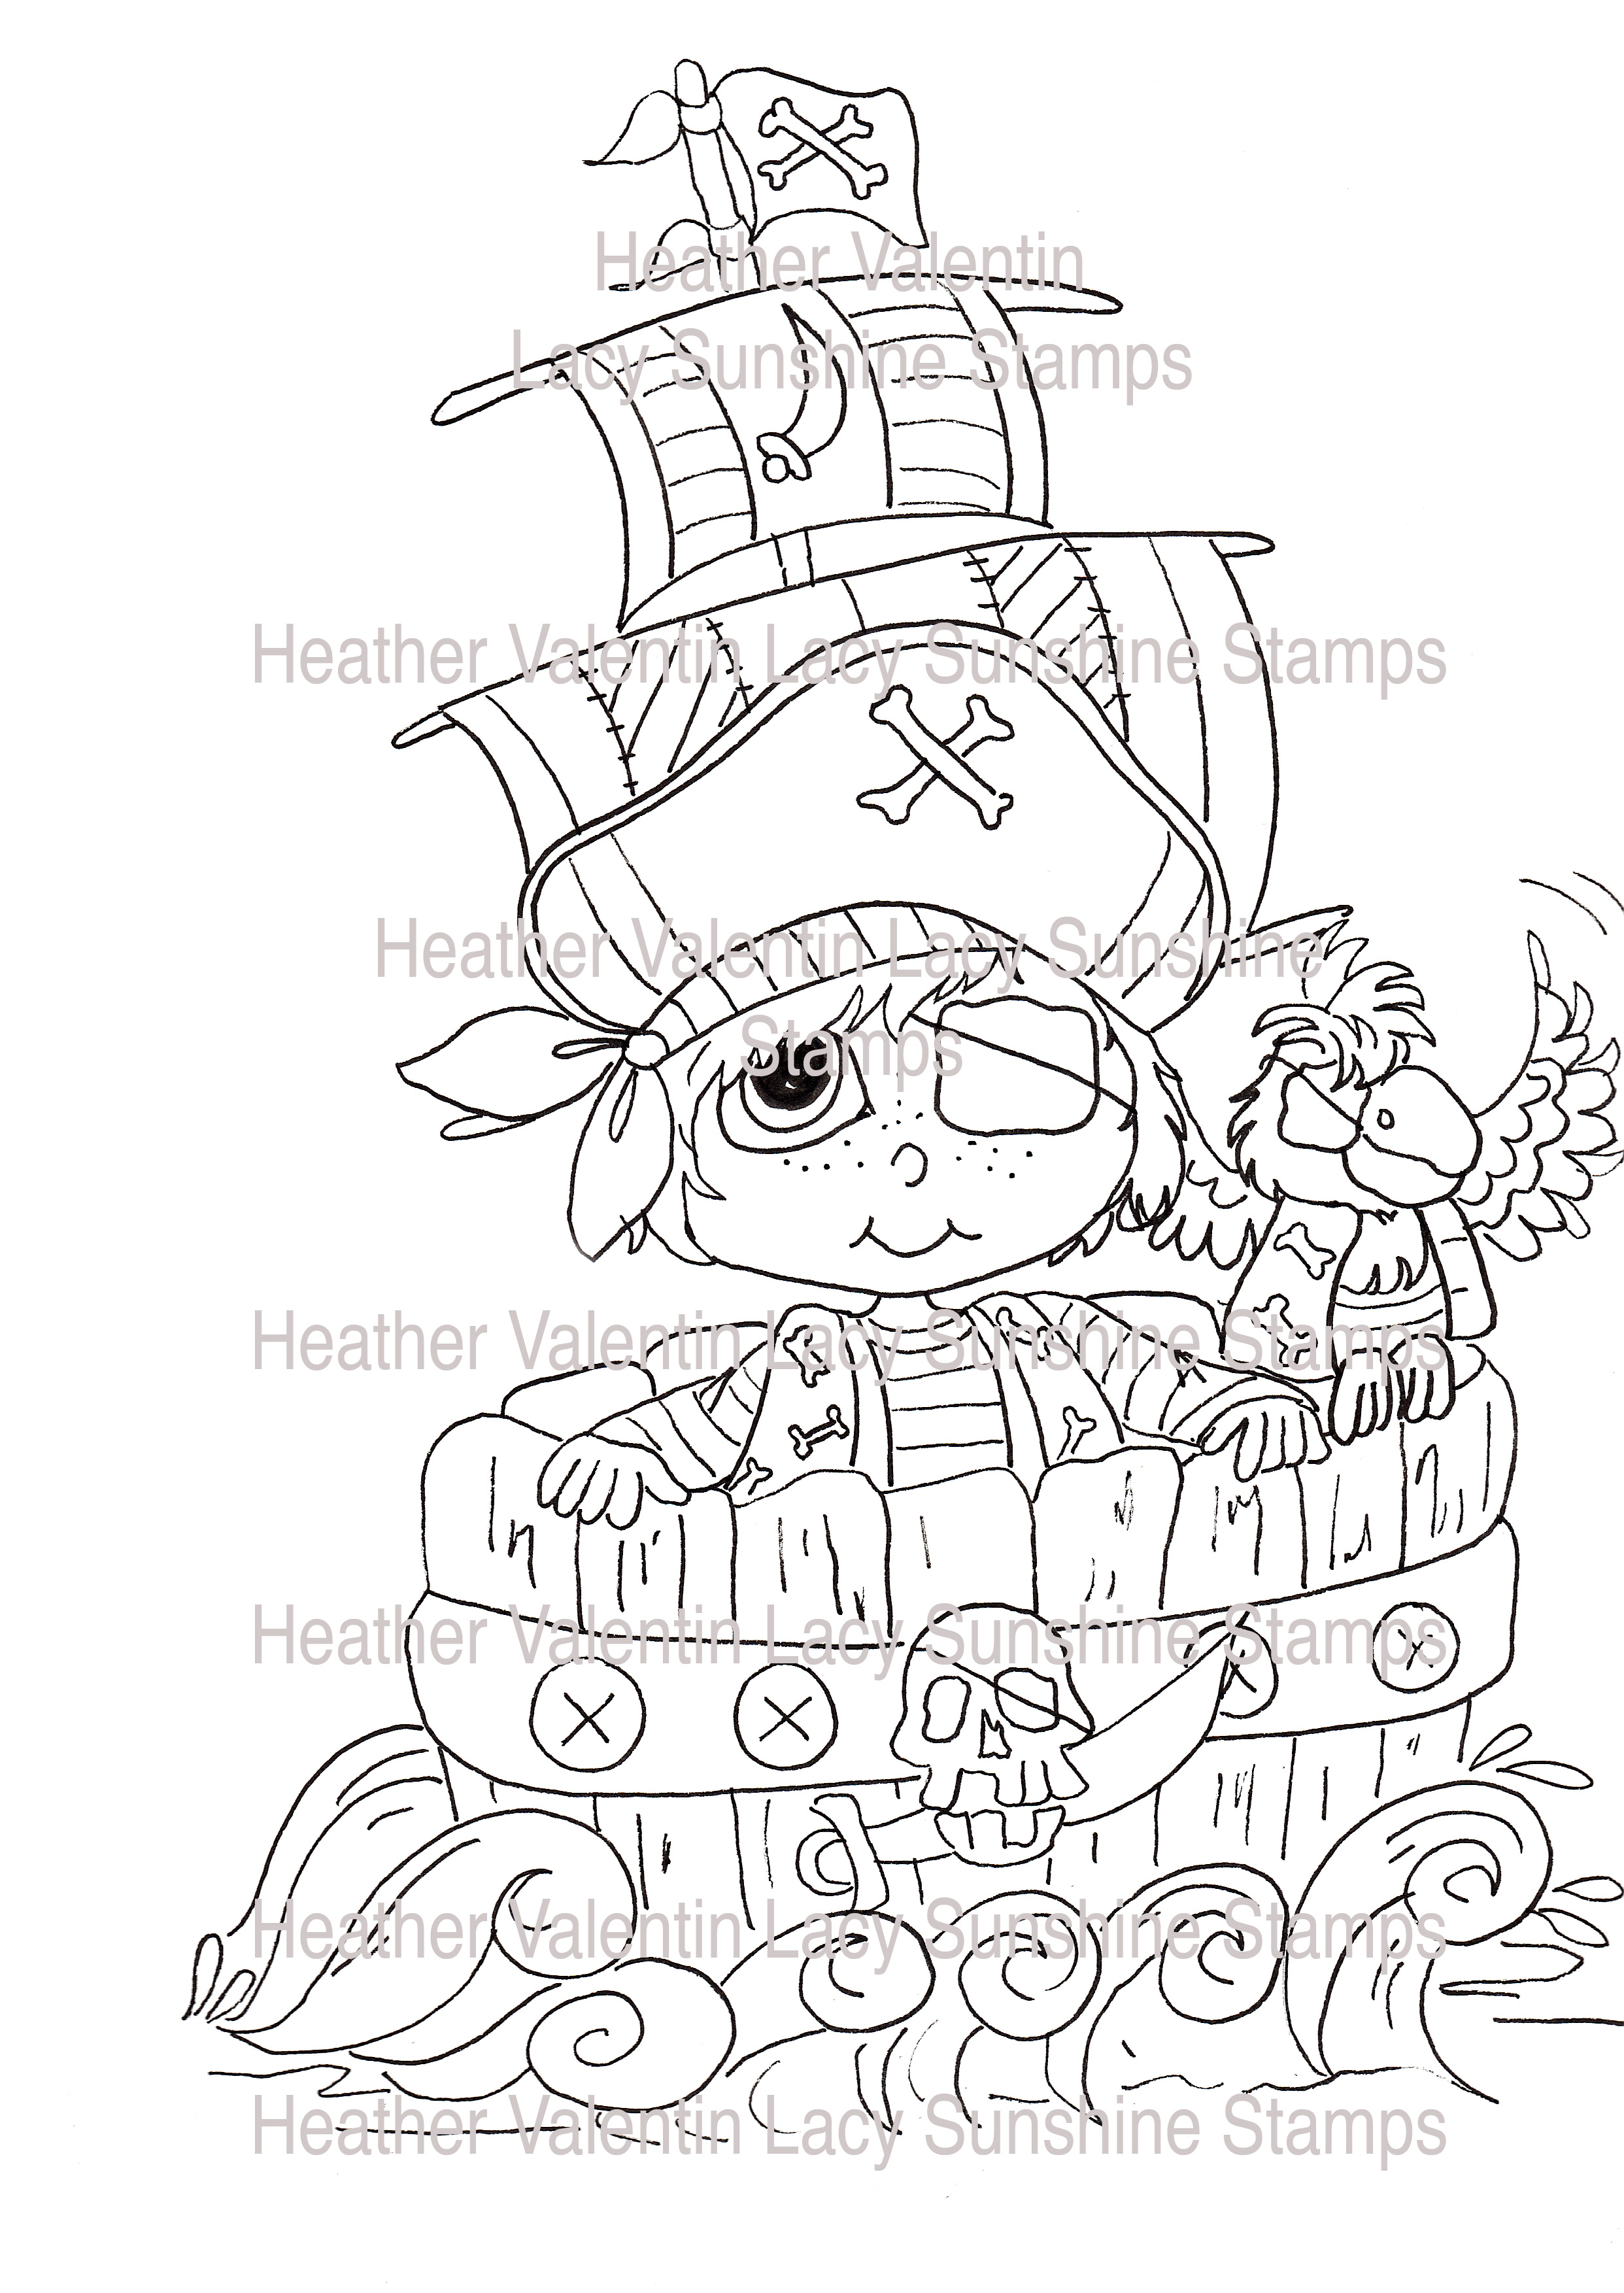 Whiskey Drawing At Free For Personal Use Still Diagram 2484x3507 Wilkes The Pirate And Parrot